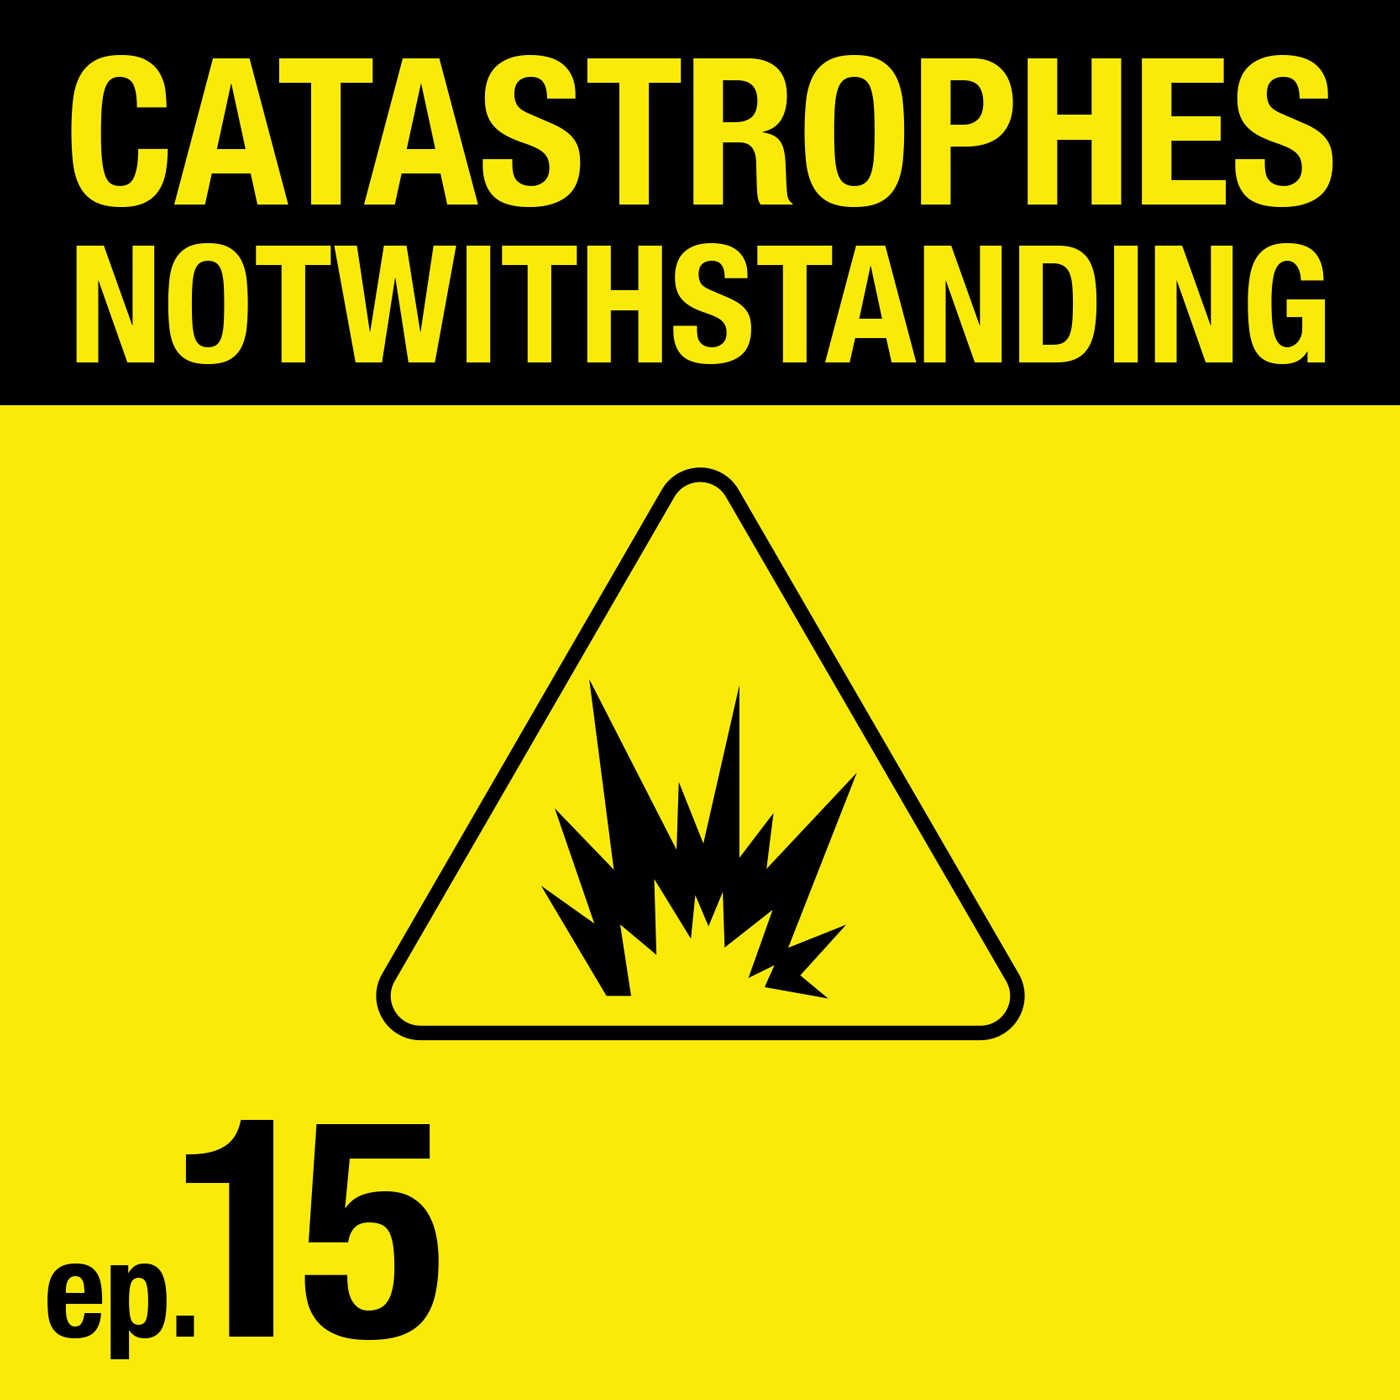 Cover Image of Catastrophes Notwithstanding Episode 15